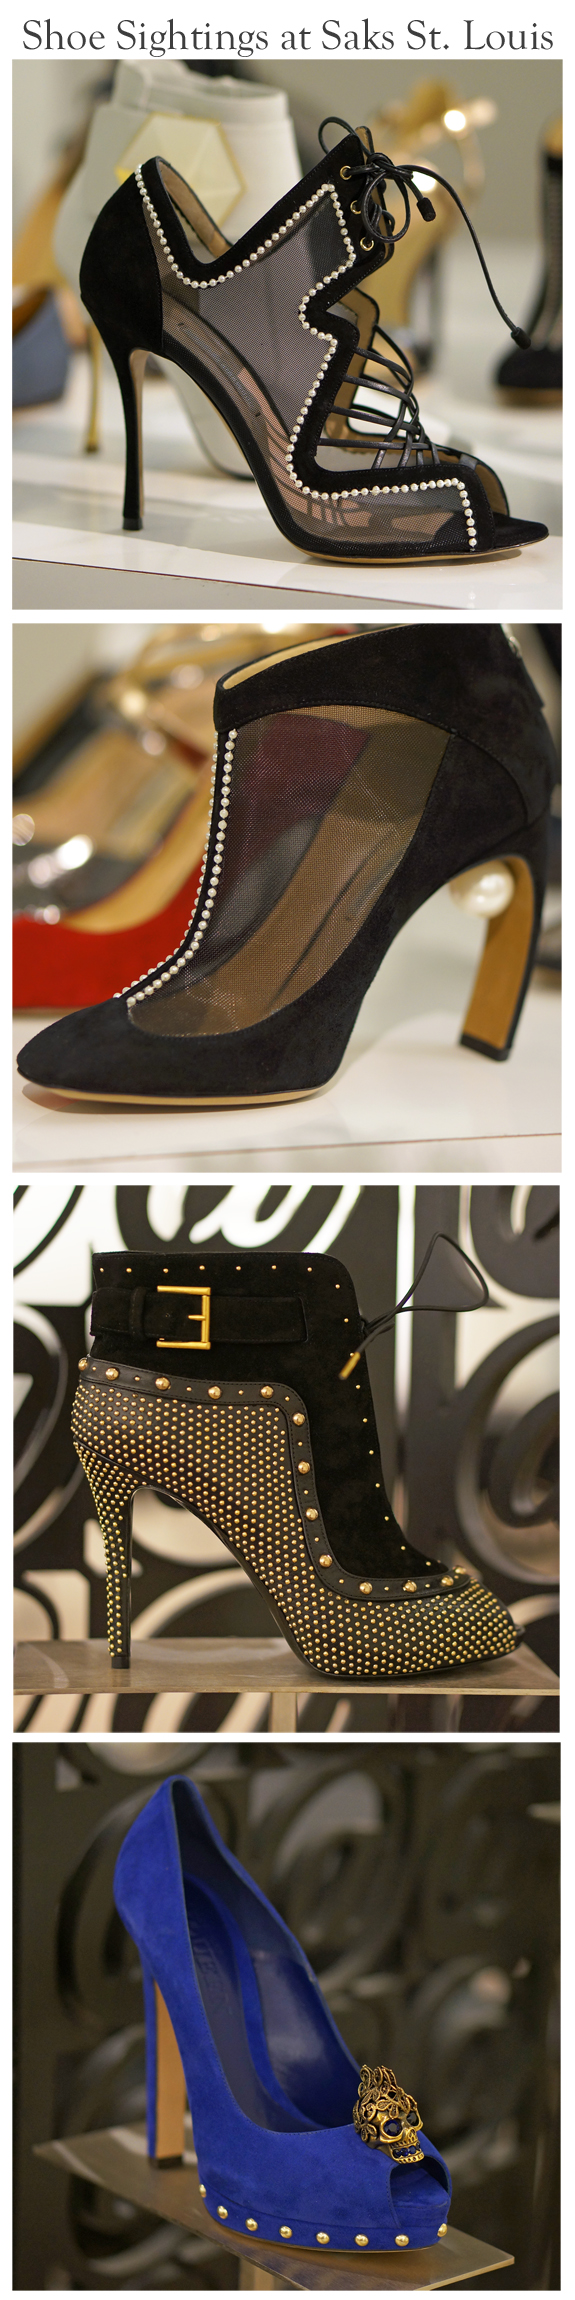 Saks St Louis Shoes, Brian Atwood, Alexander McQueen